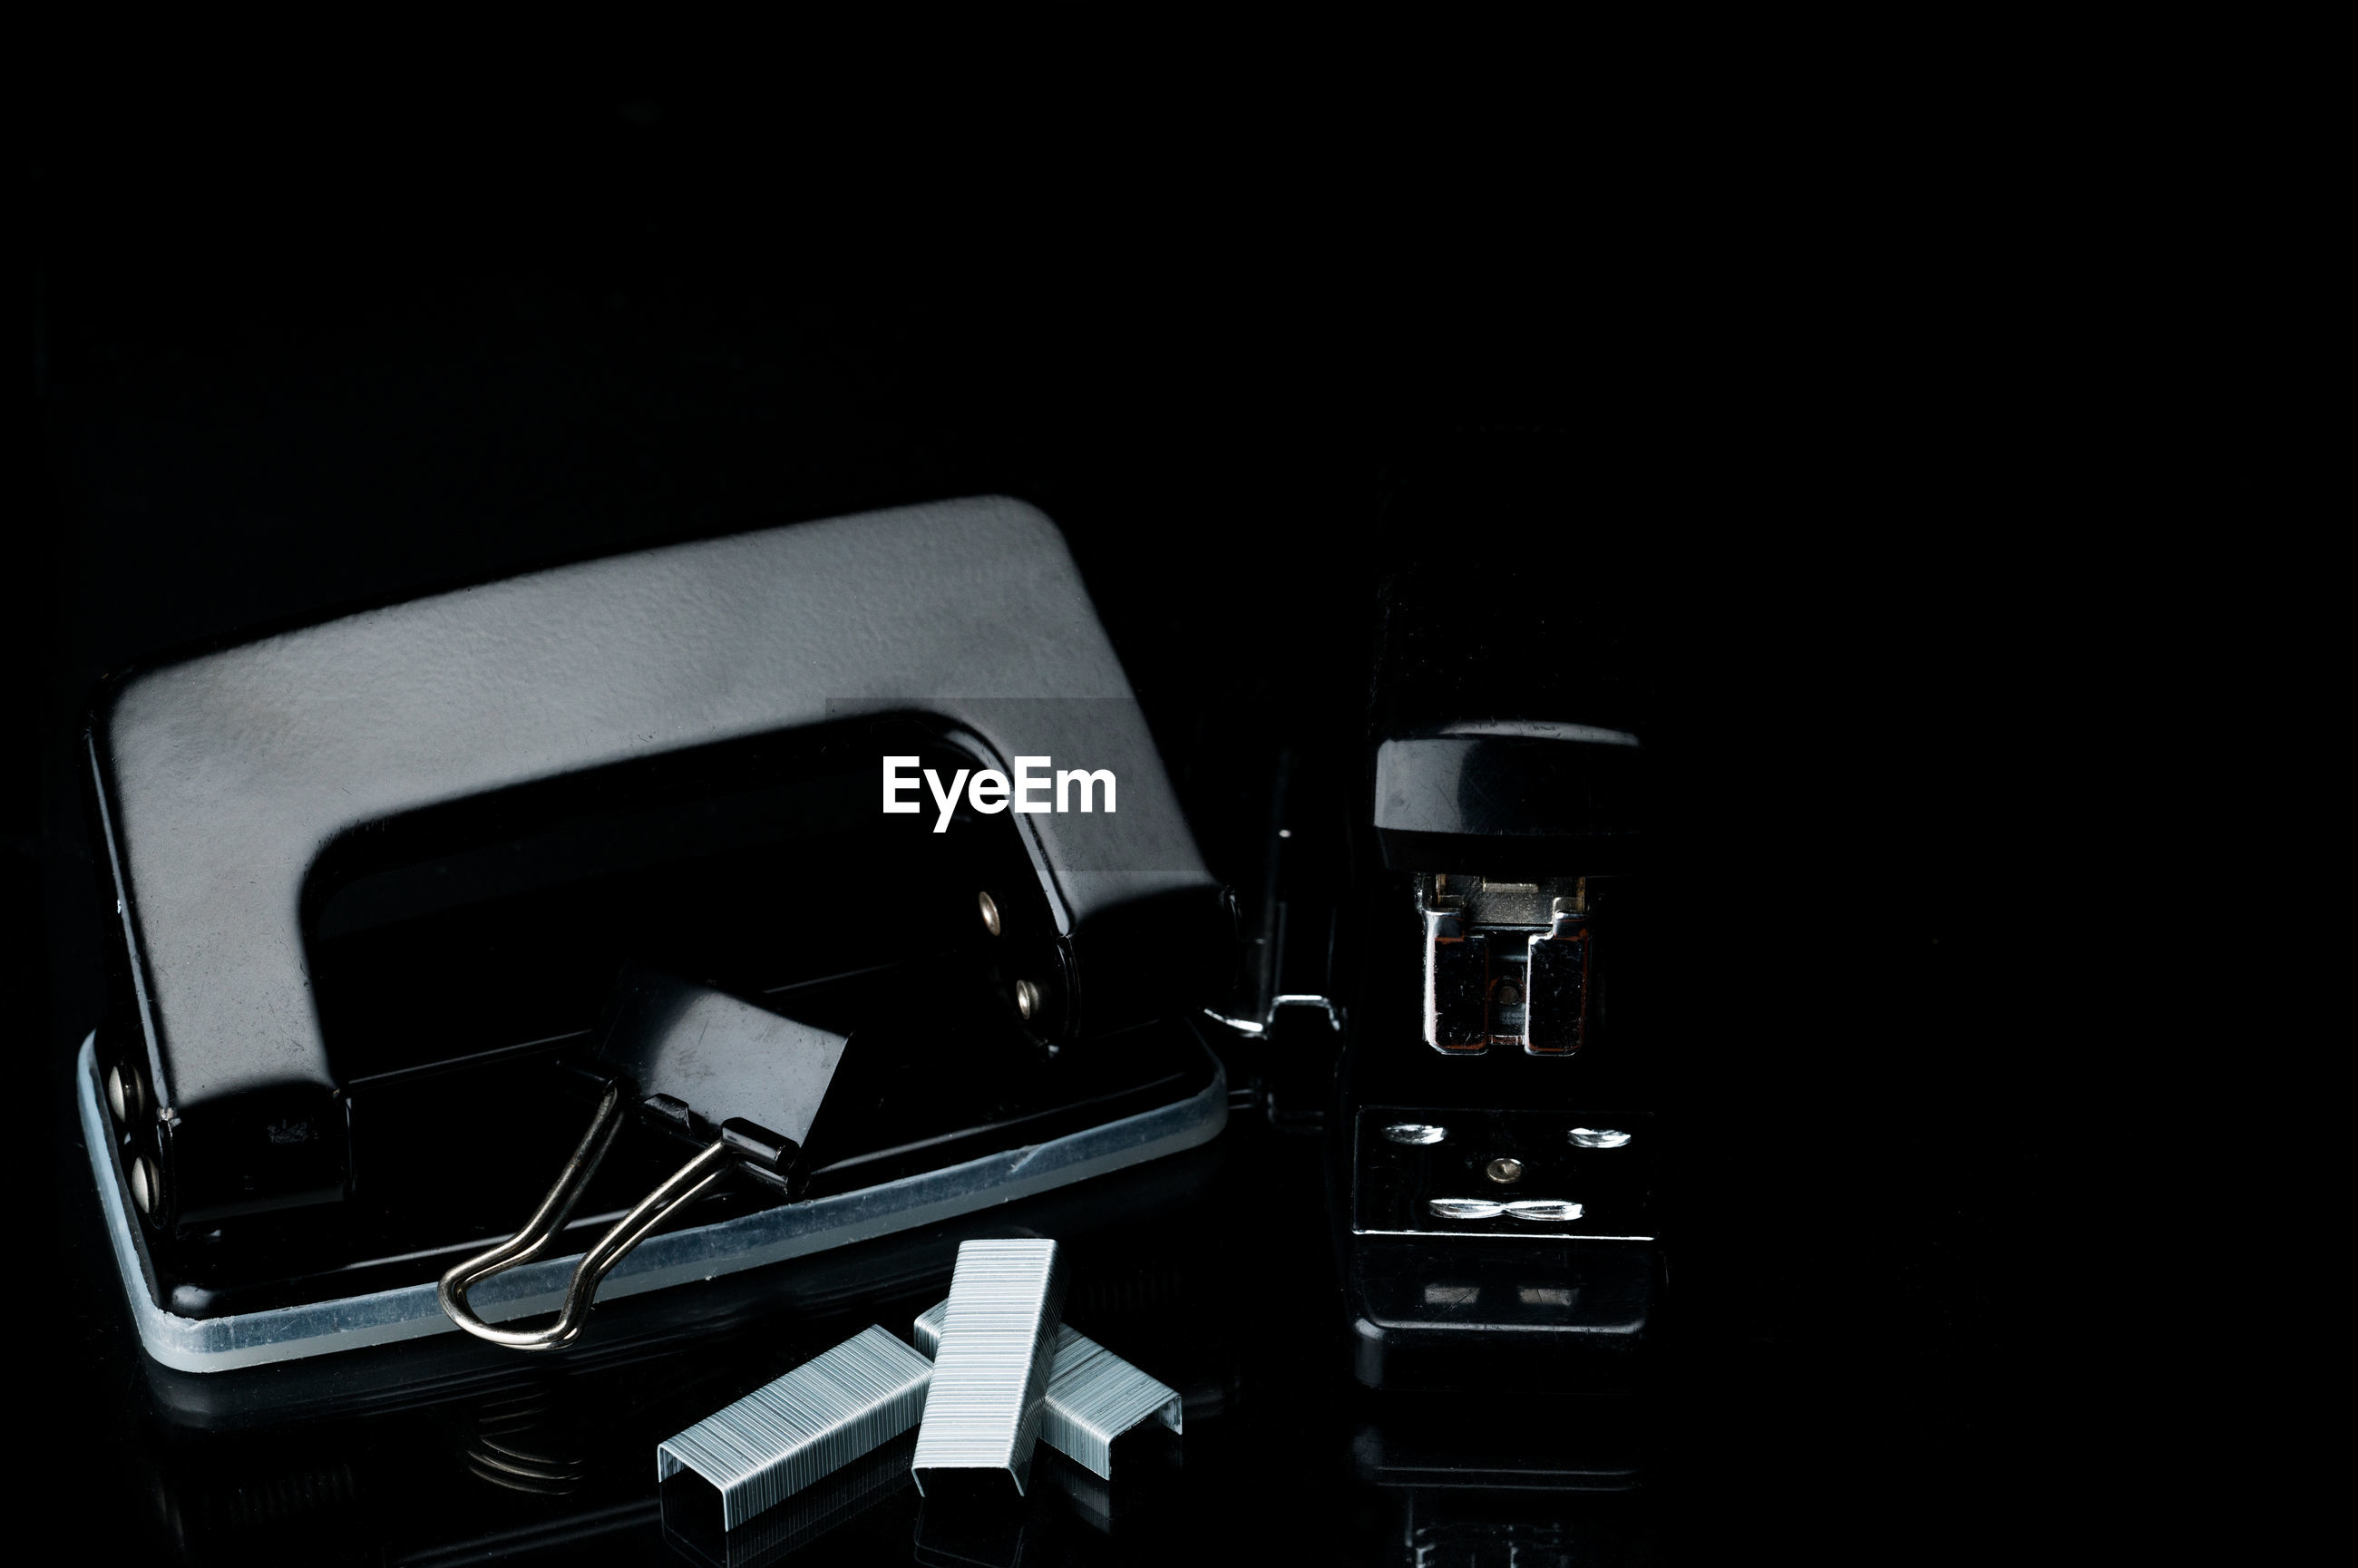 High angle view of equipment on table against black background